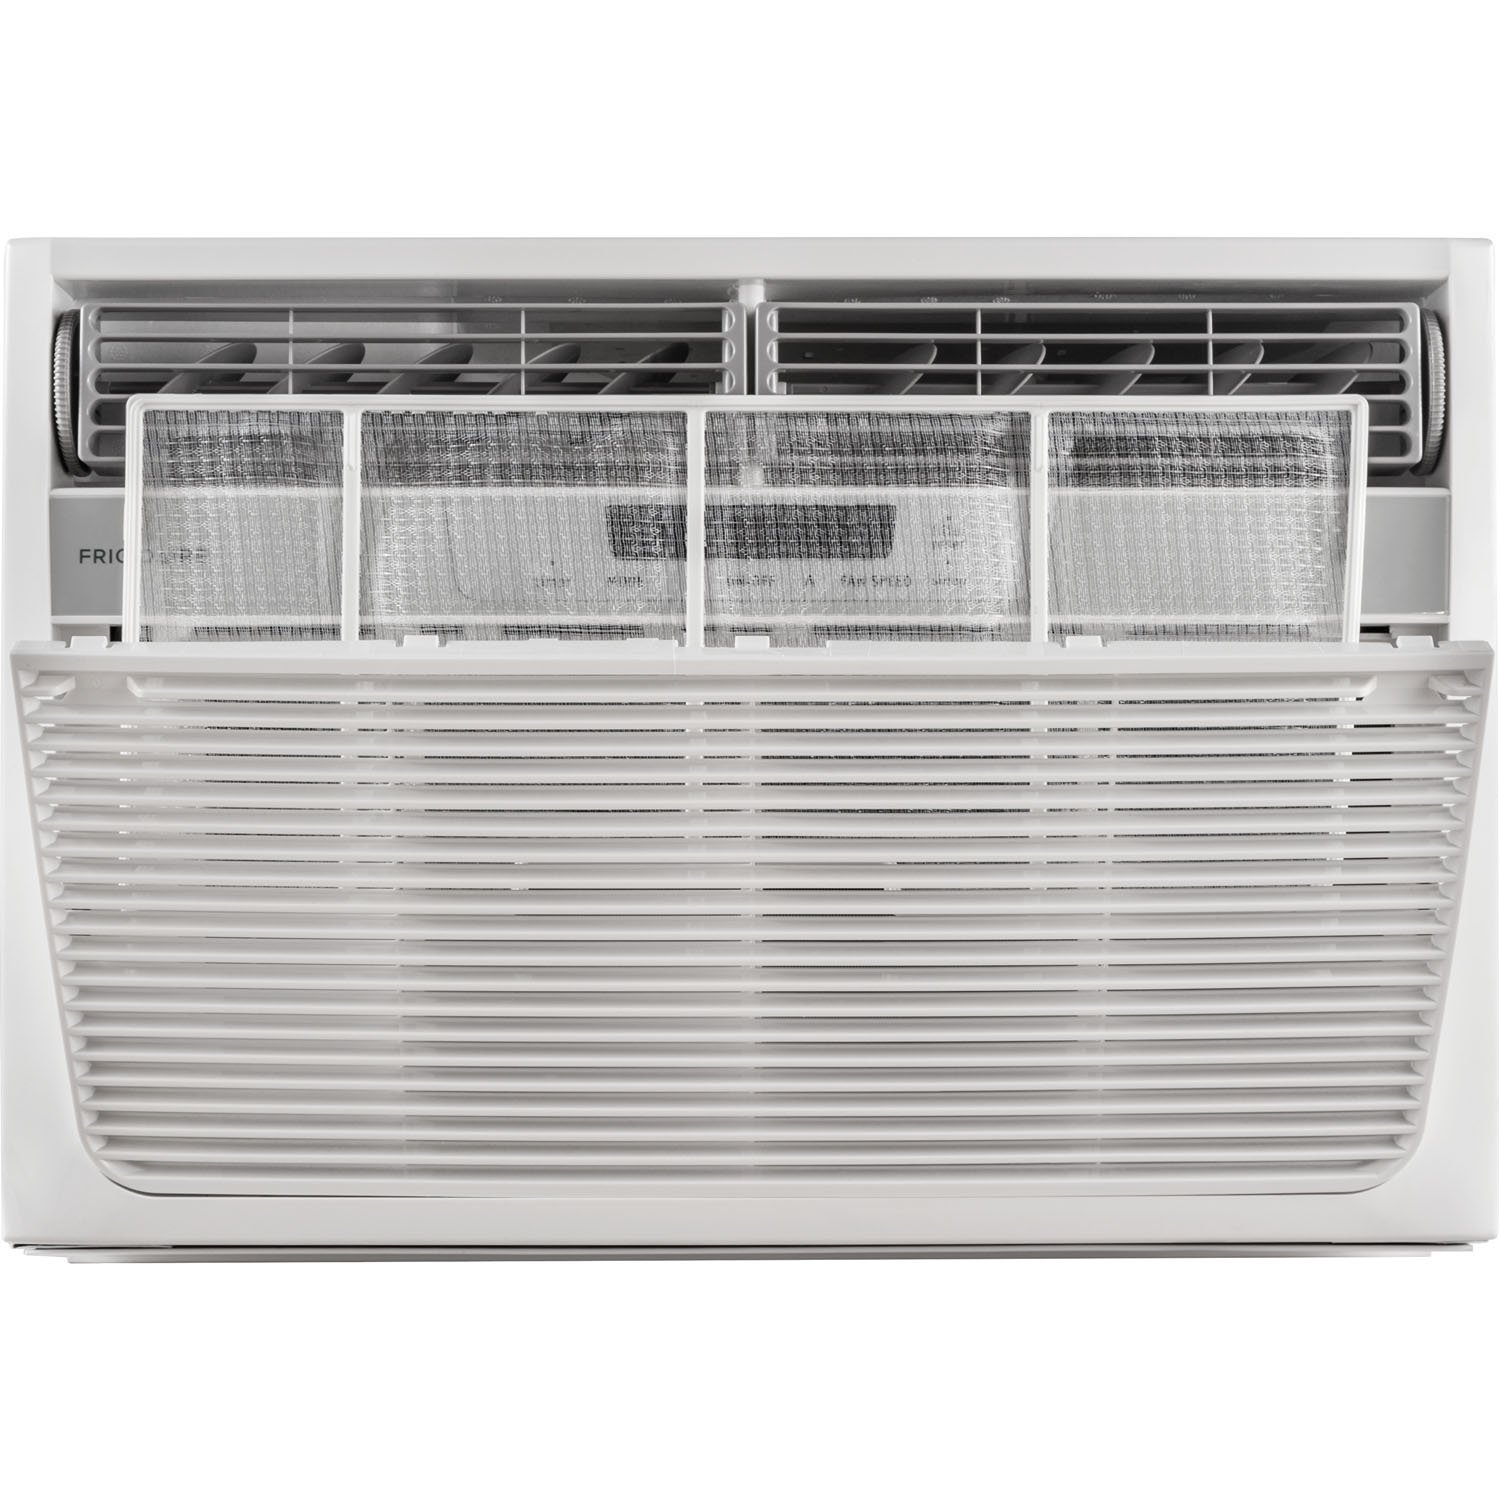 Frigidaire FFRH1222R2 12000 BTU 230-volt Compact Slide-Out Chassis Air Conditioner with 11000 BTU Supplemental Heat Capability by Frigidaire (Image #6)